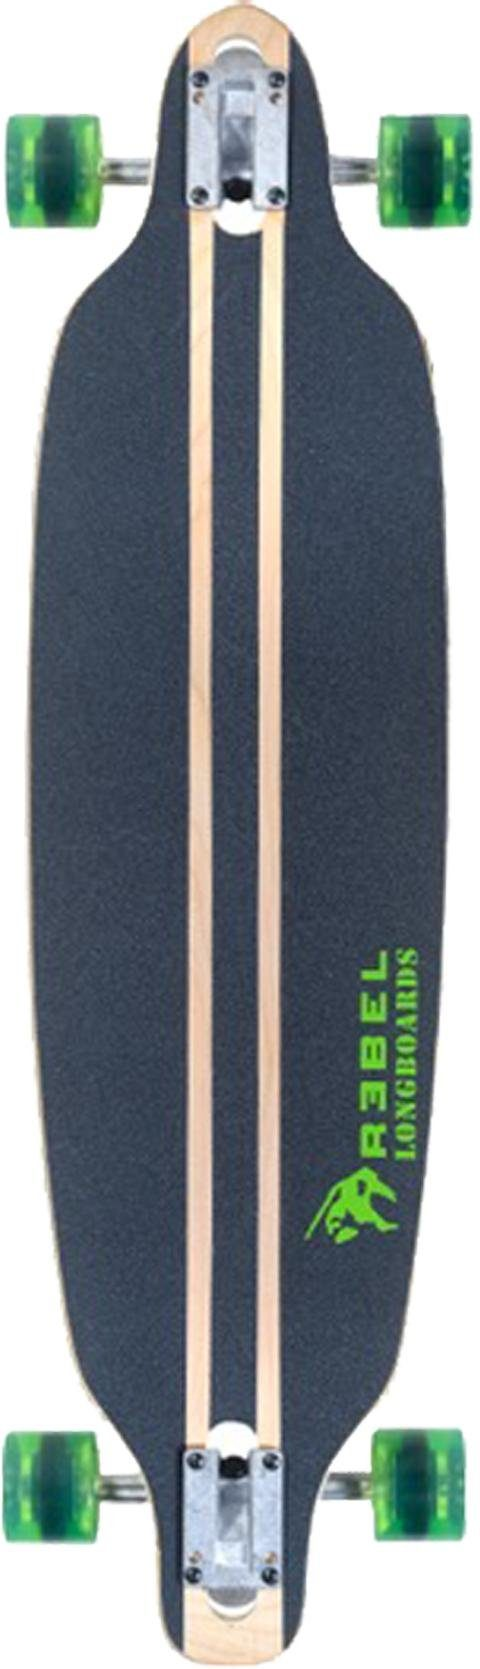 Rebel Longboard »Pacific Palisades green«